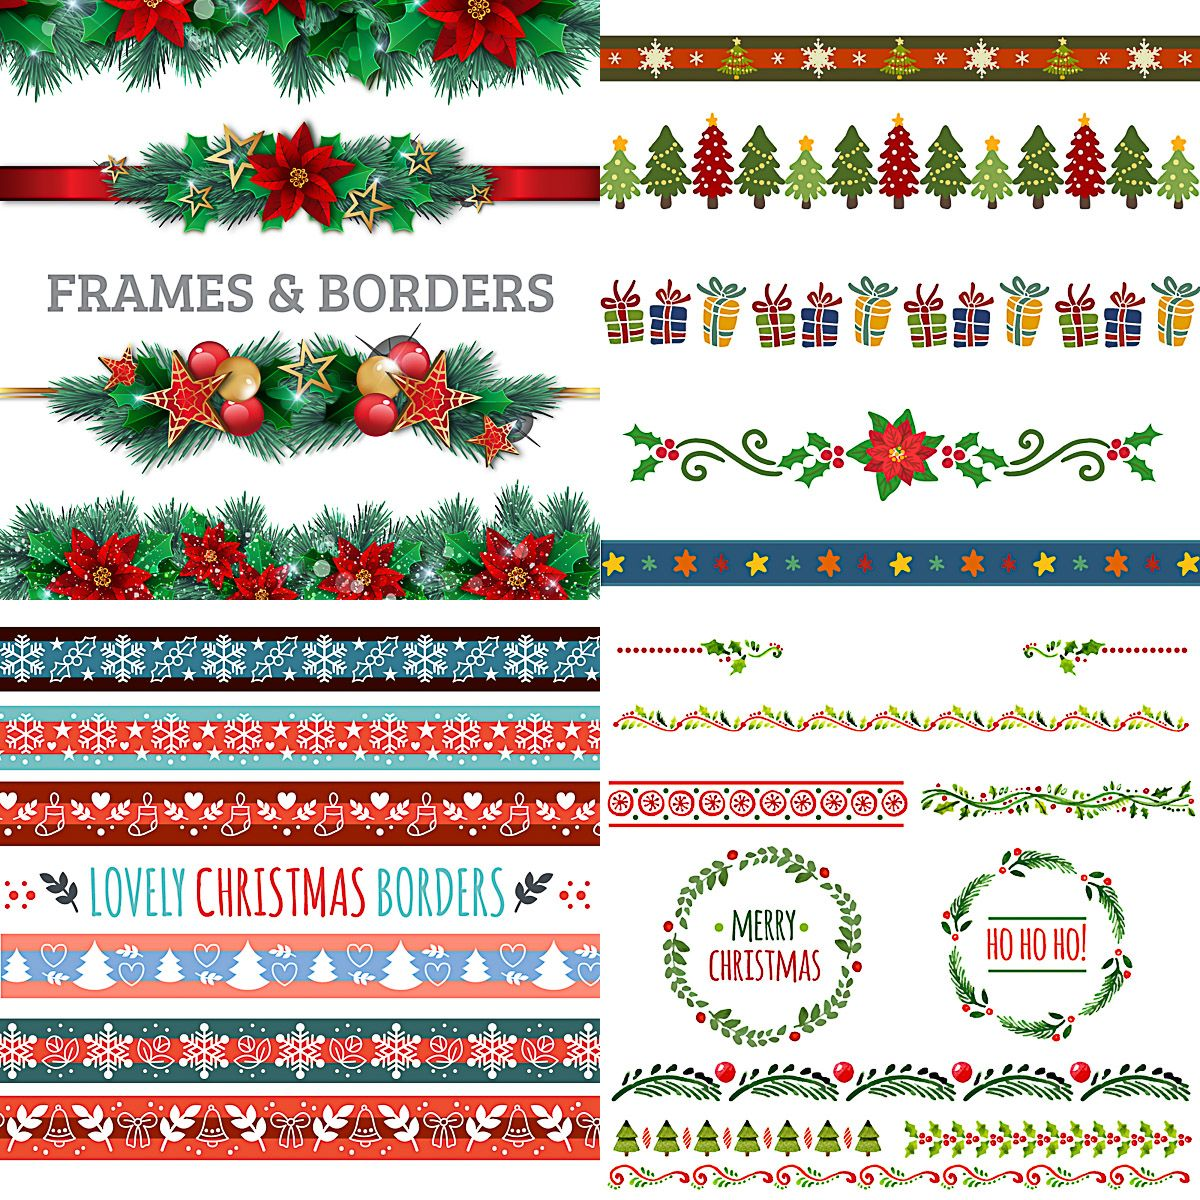 Christmas Graphics Free Download.Cute Merry Christmas Borders Clip Art And Ornaments Free